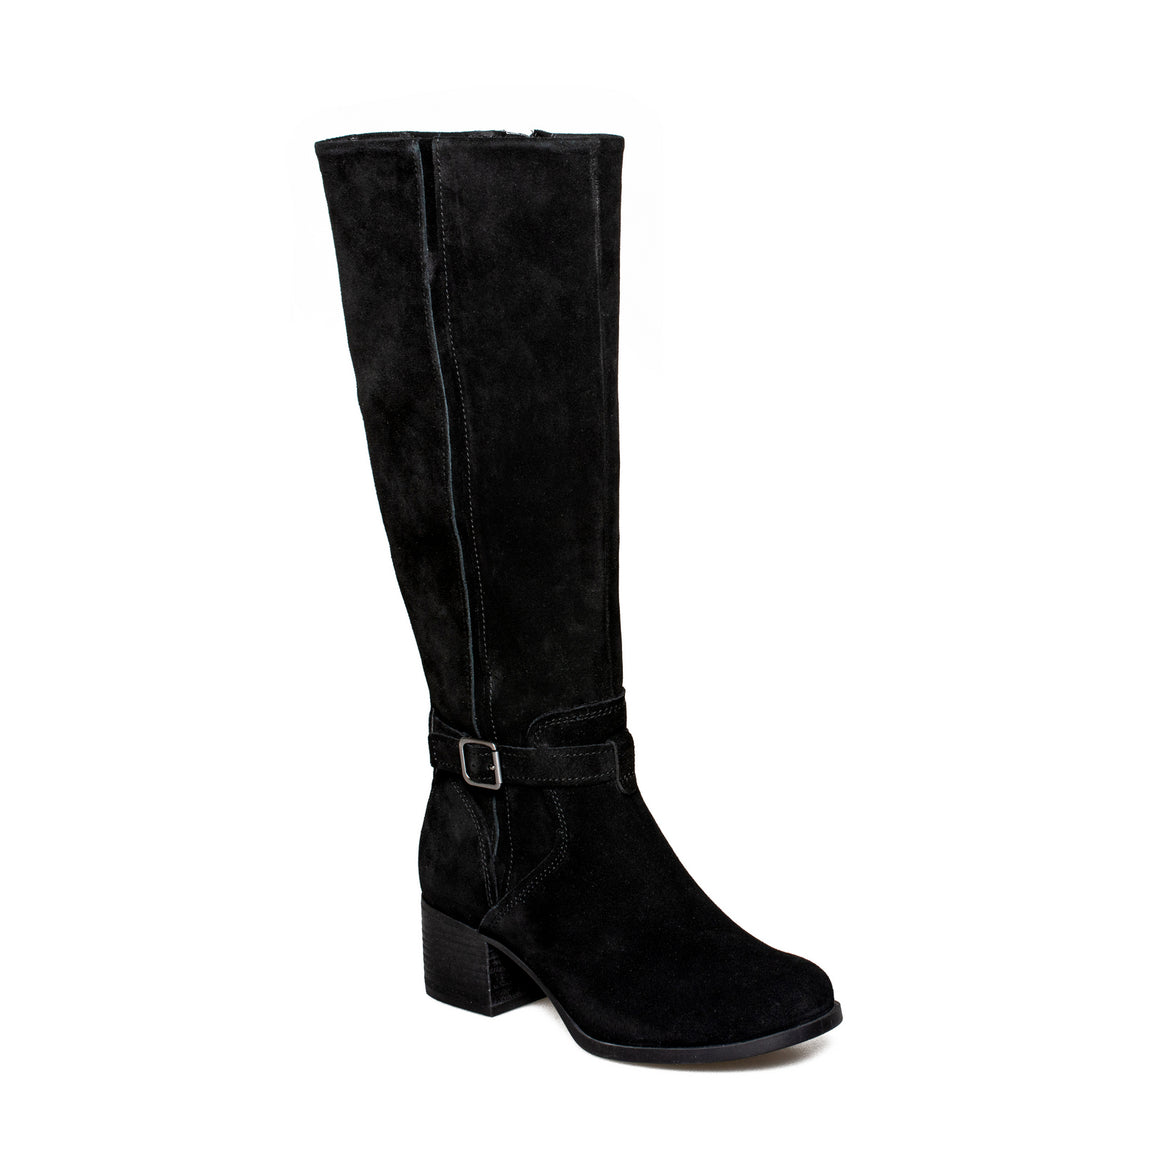 Koolaburra By UGG Madeley Black Boots - Women's